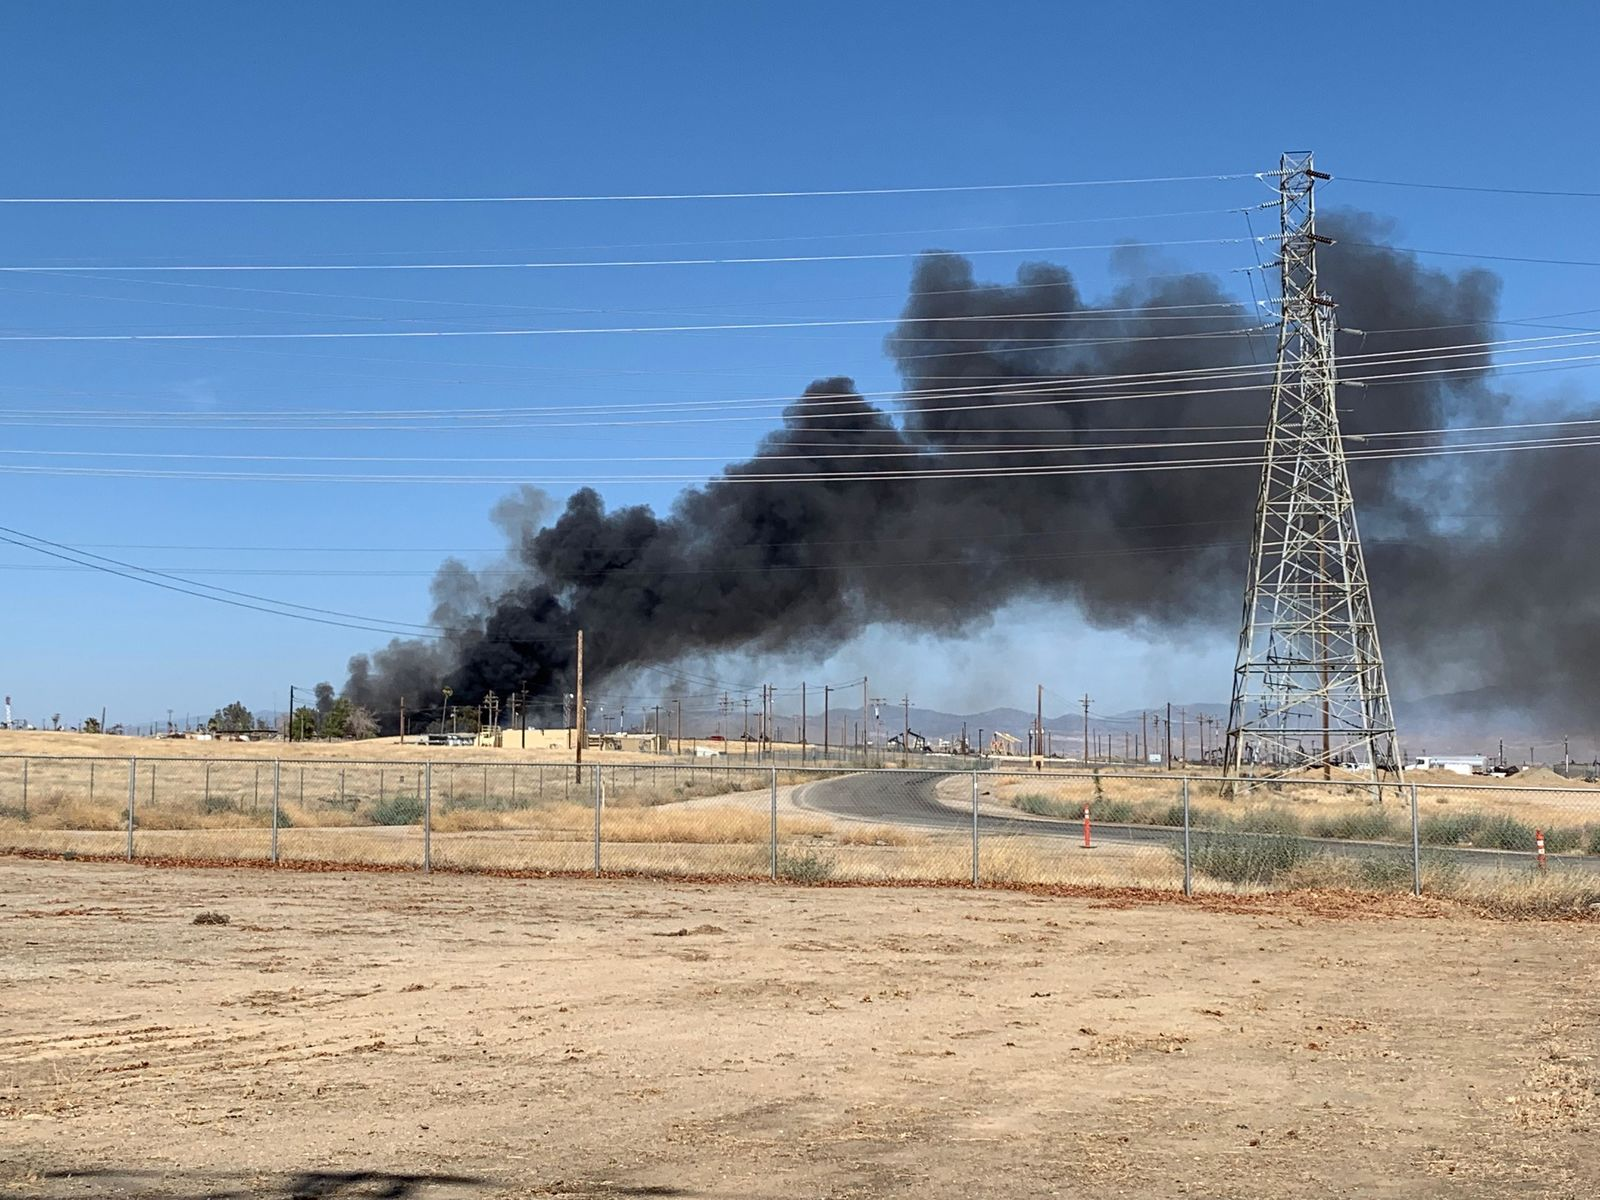 Firefighters respond to a fire in Oildale, Calif., on Saturday, Aug. 17, 2019.